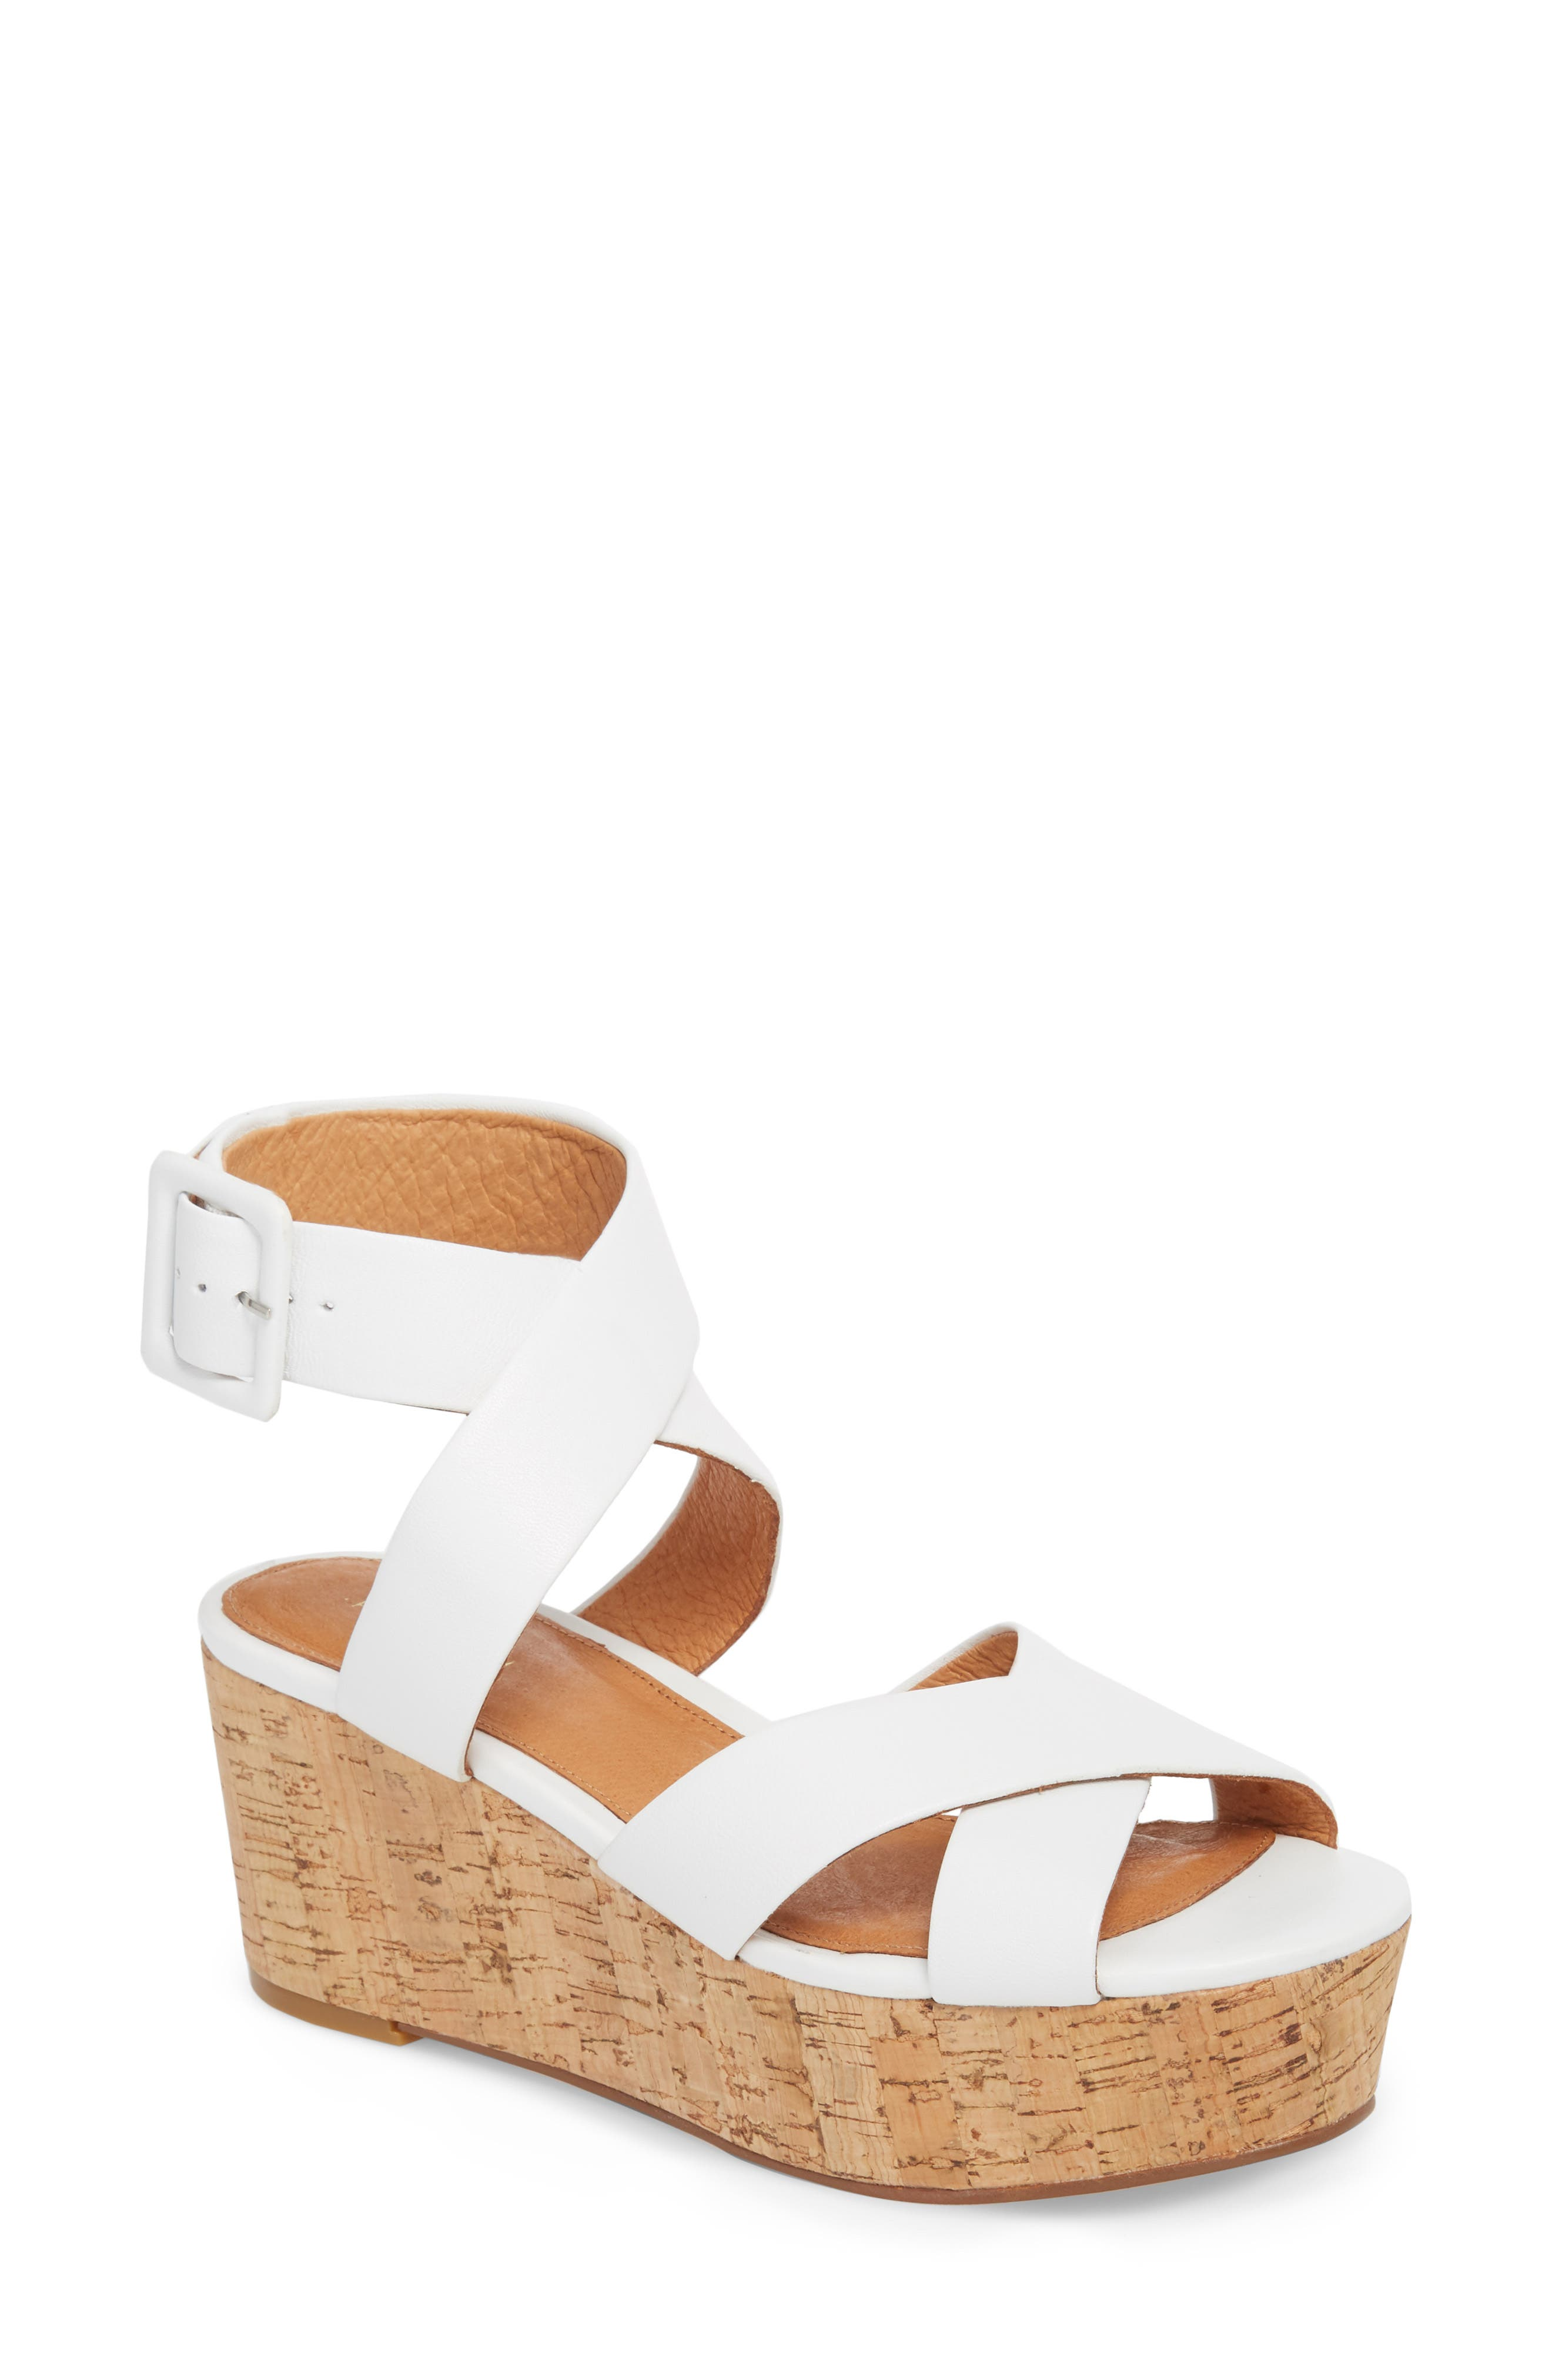 Evie Platform Wedge Sandal,                             Main thumbnail 1, color,                             White Leather